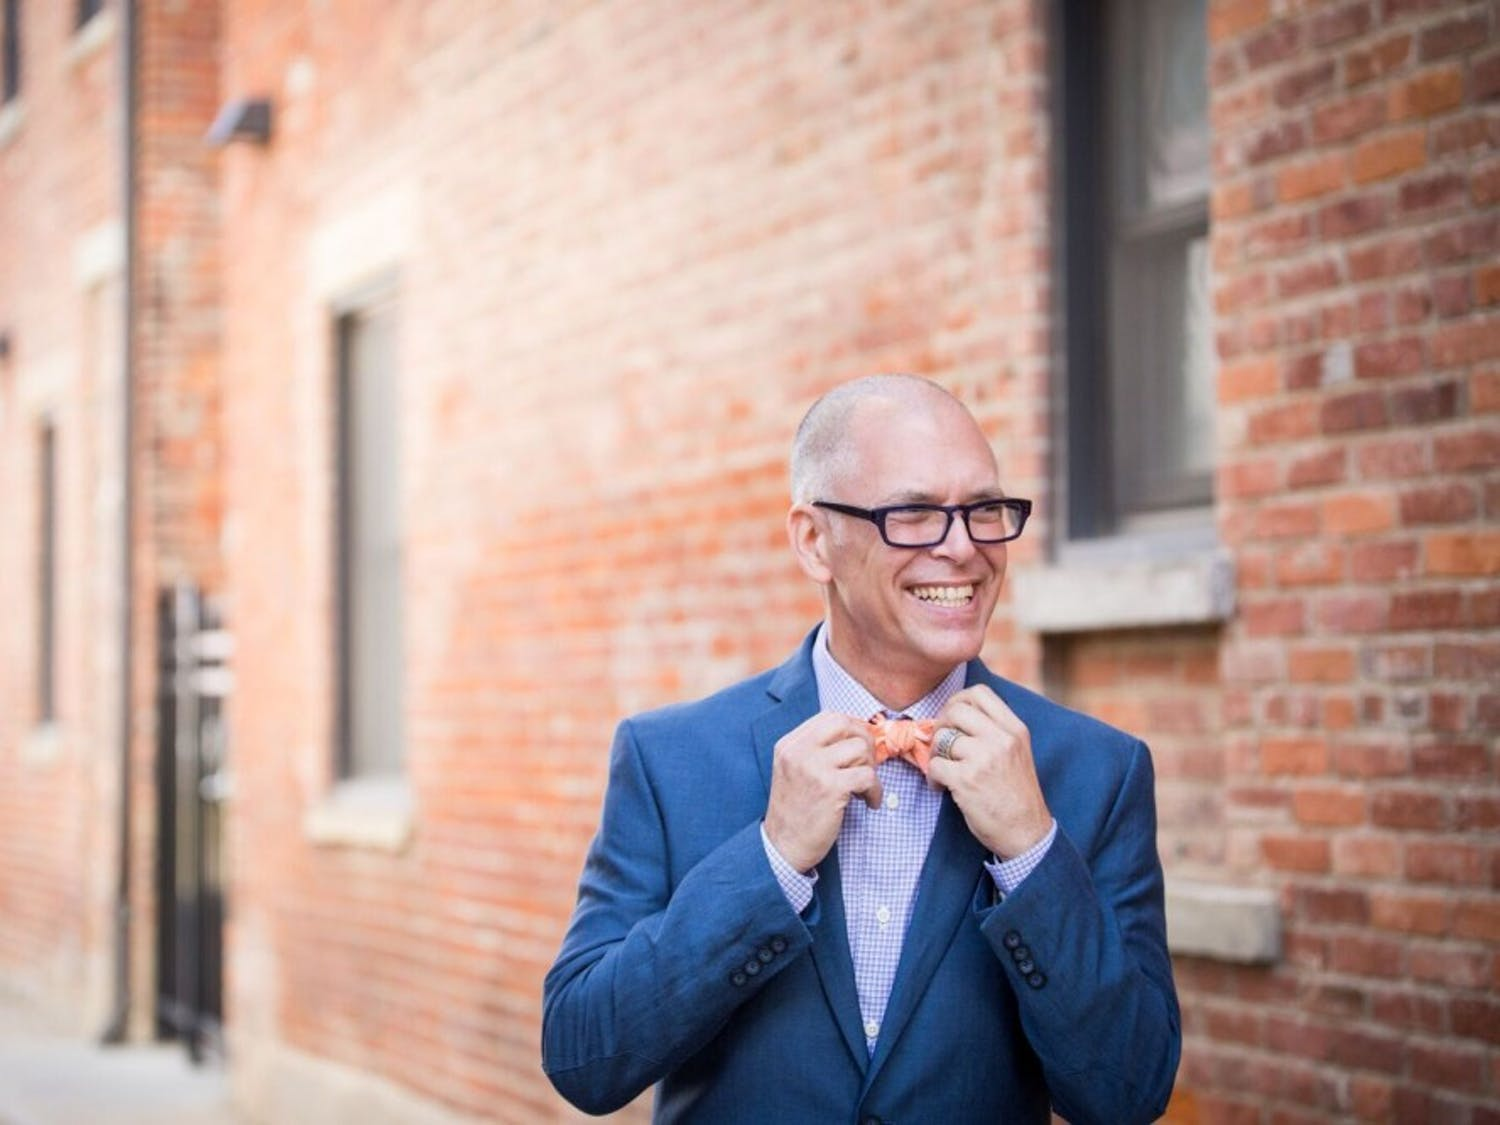 Jim Obergefell, lead plaintiff in the Supreme Court's same-sex marriage case, stressed the importance of the LGBTQ community continuing to push for transgender equality in 2016. Photo courtesy of Emma Parker Photography.